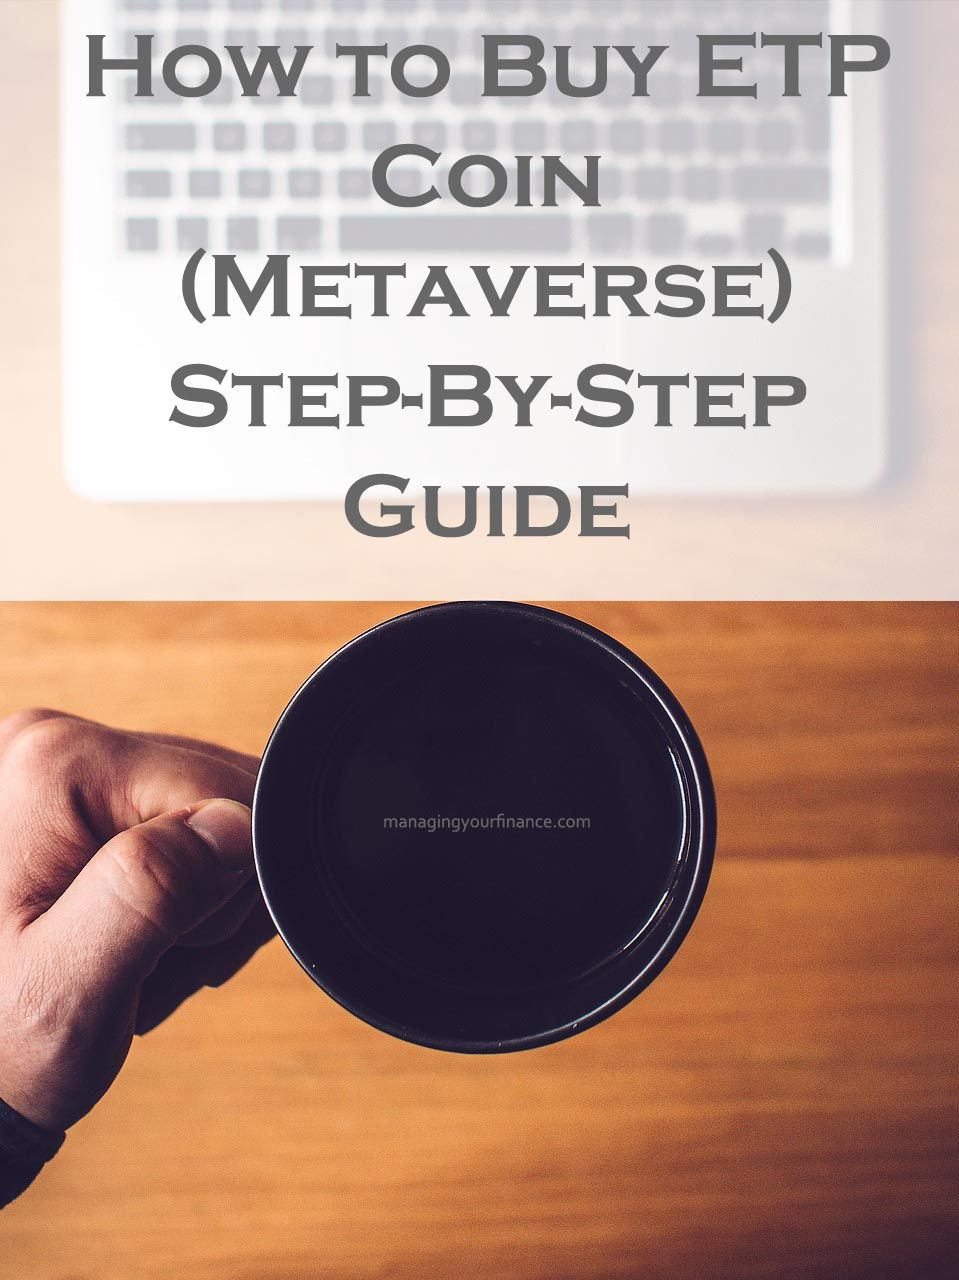 How to Buy ETP Coin (Metaverse) StepByStep Guide